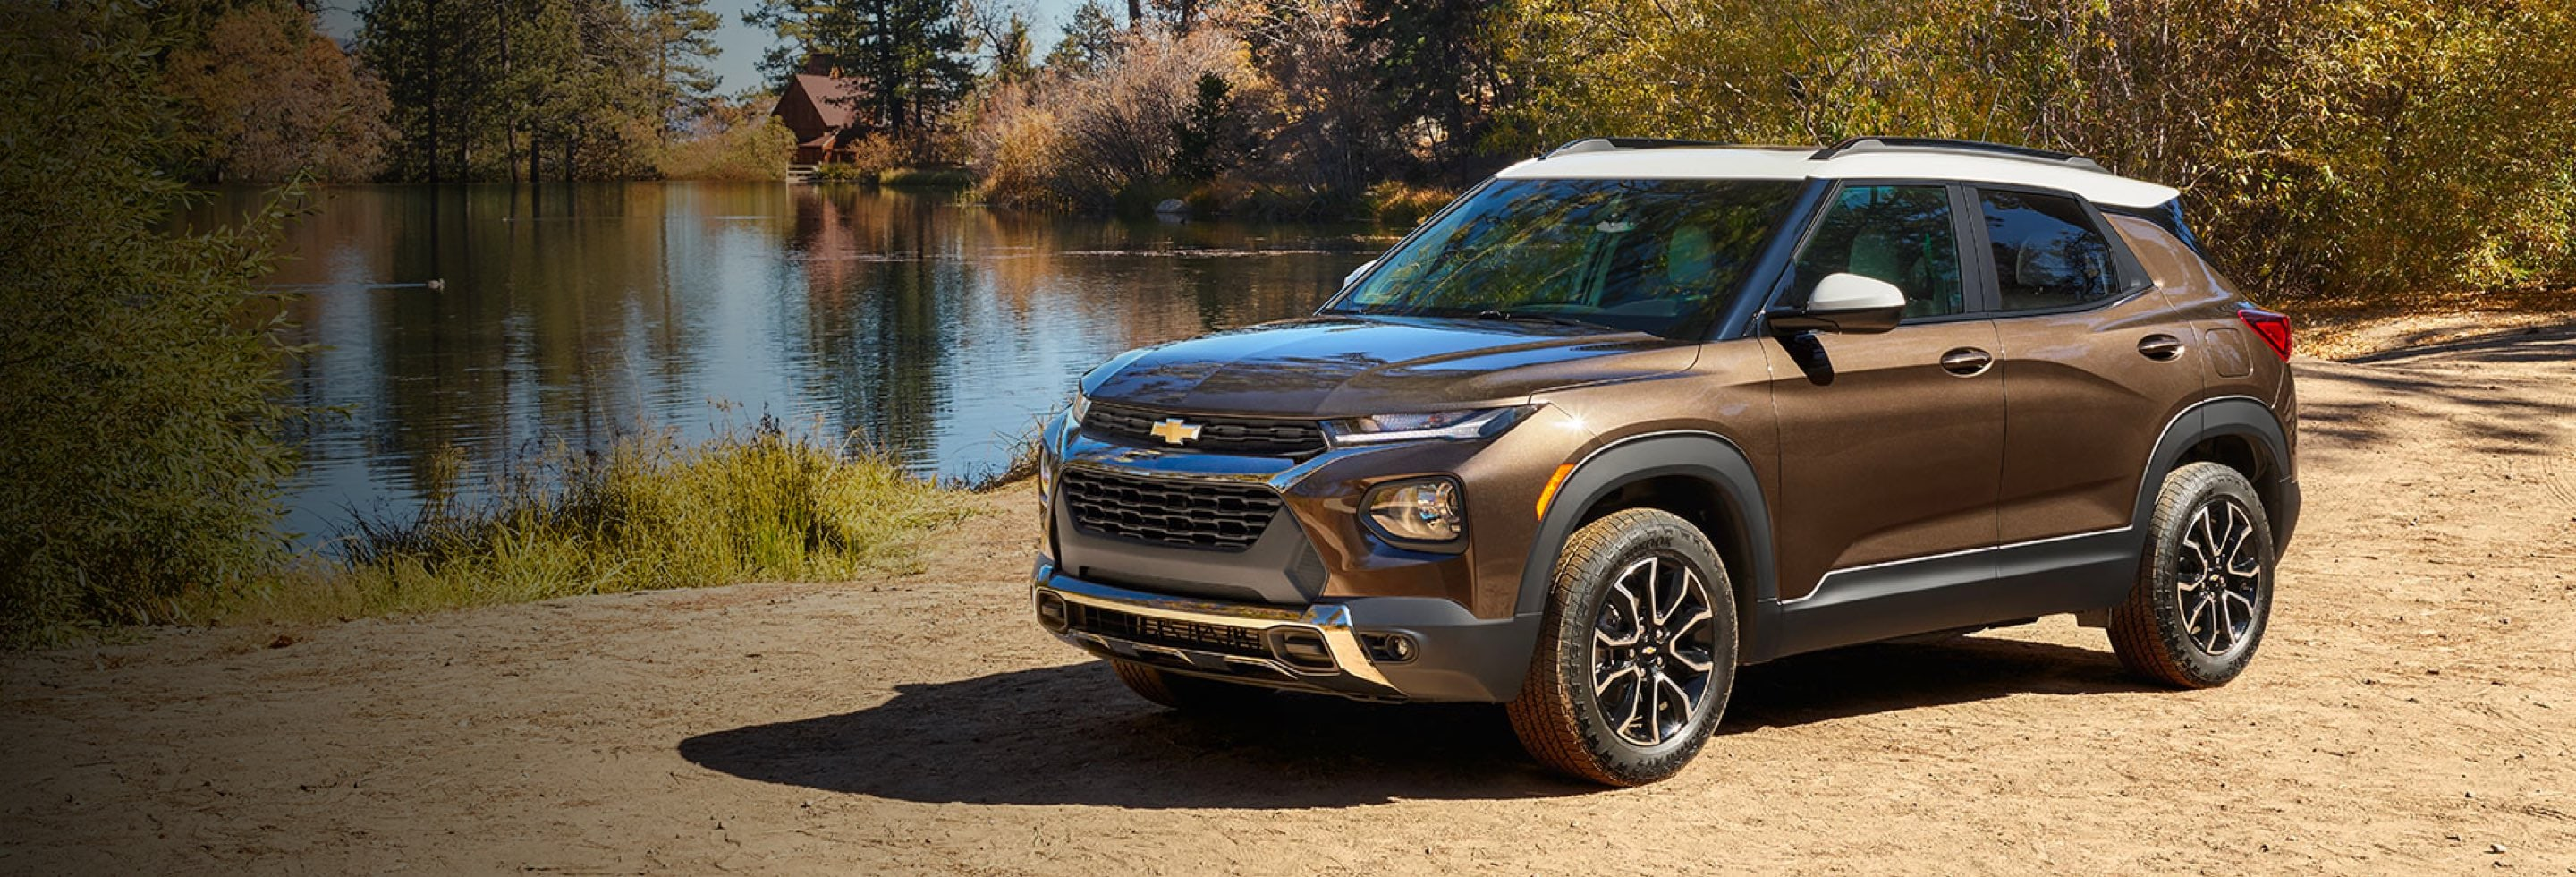 2021 Chevrolet Trailblazer parked near a pond